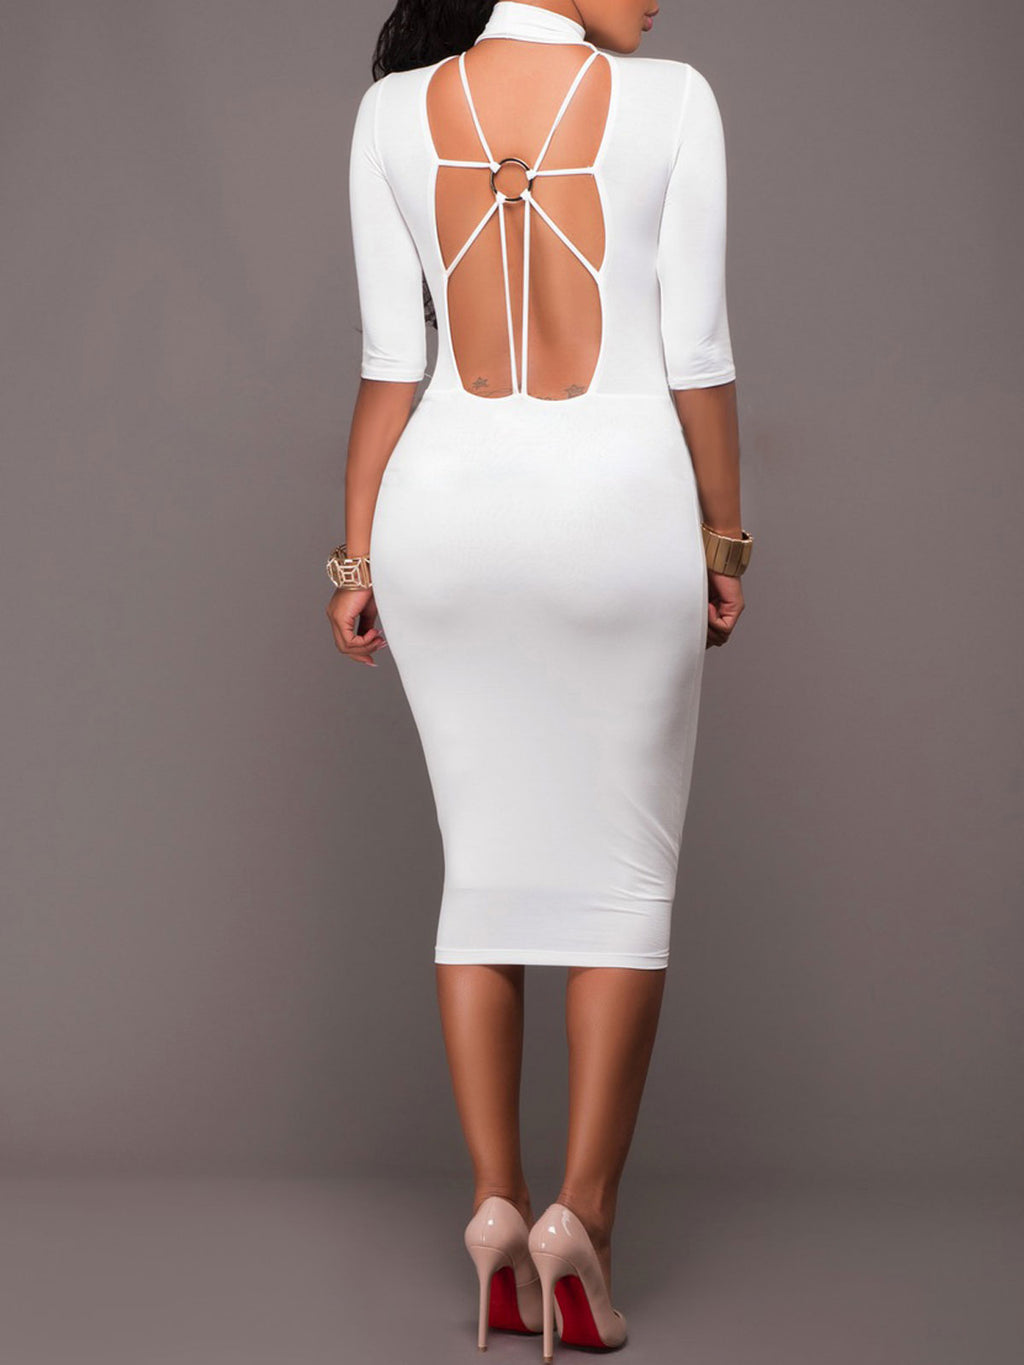 White&Black Party Dress Open Back Long Sleeve Basic Bodycon Midi Dress Rikkishop